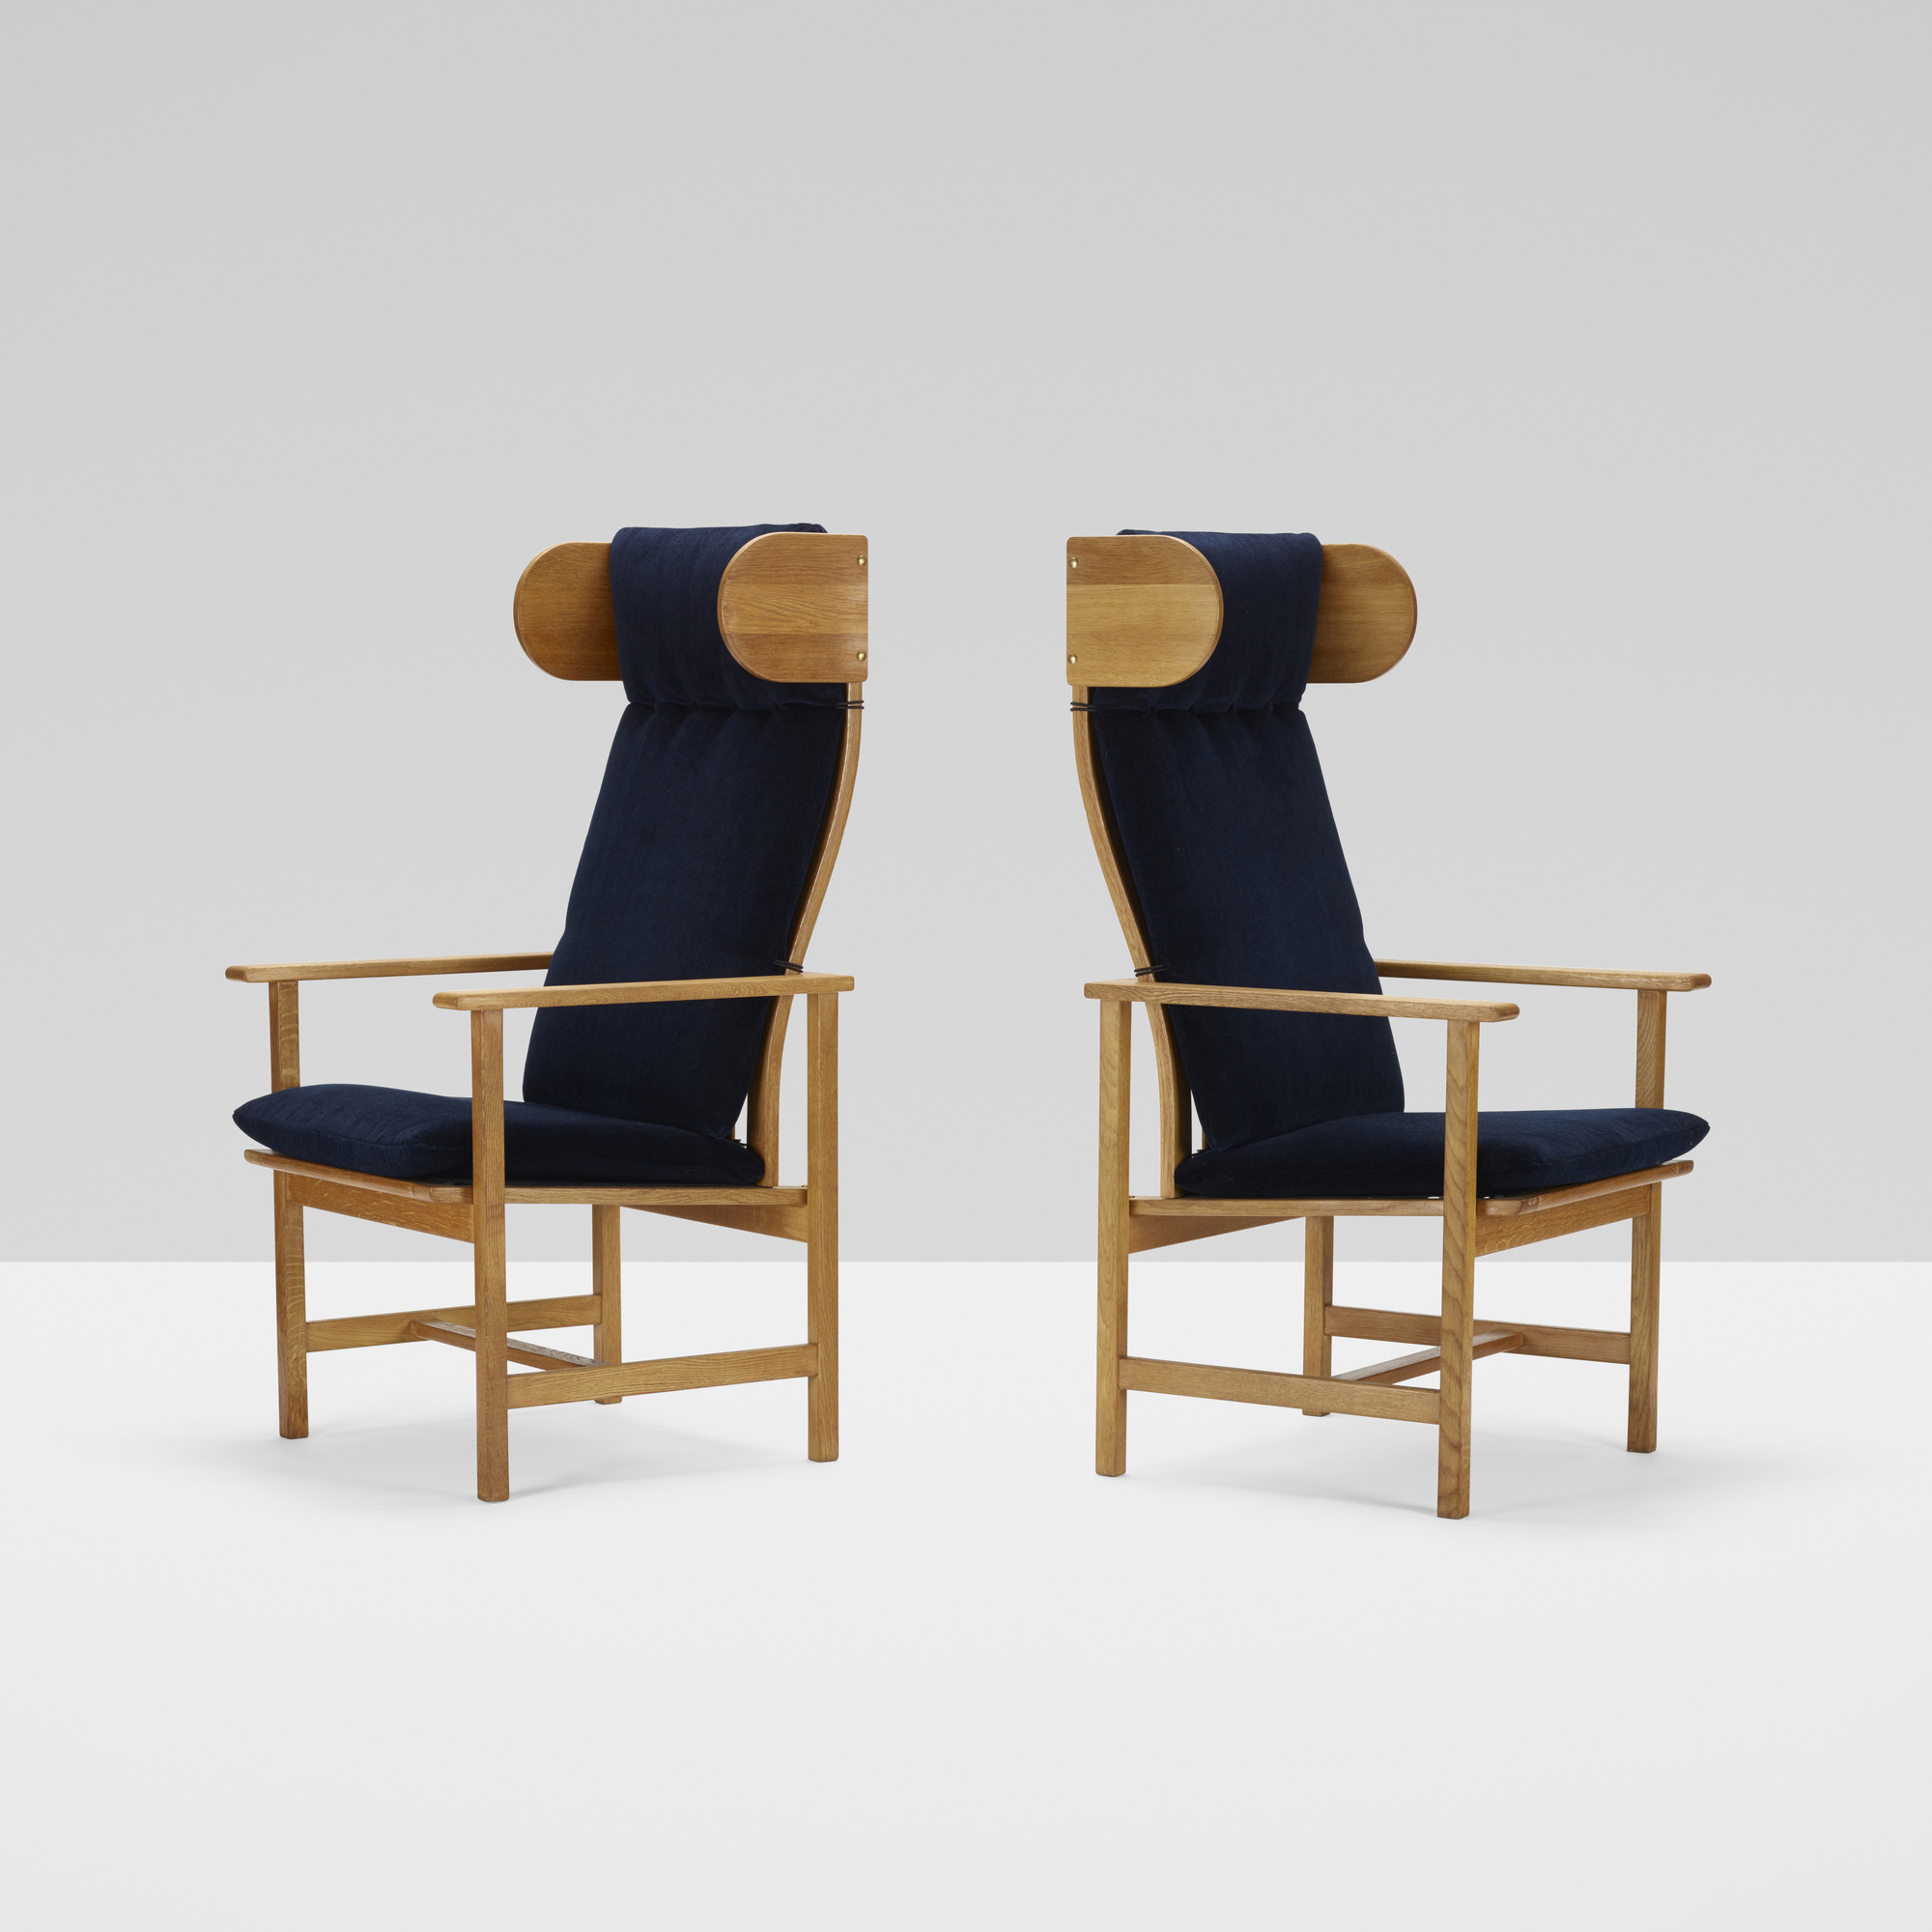 370: Børge Mogensen / armchairs, pair (2 of 5)